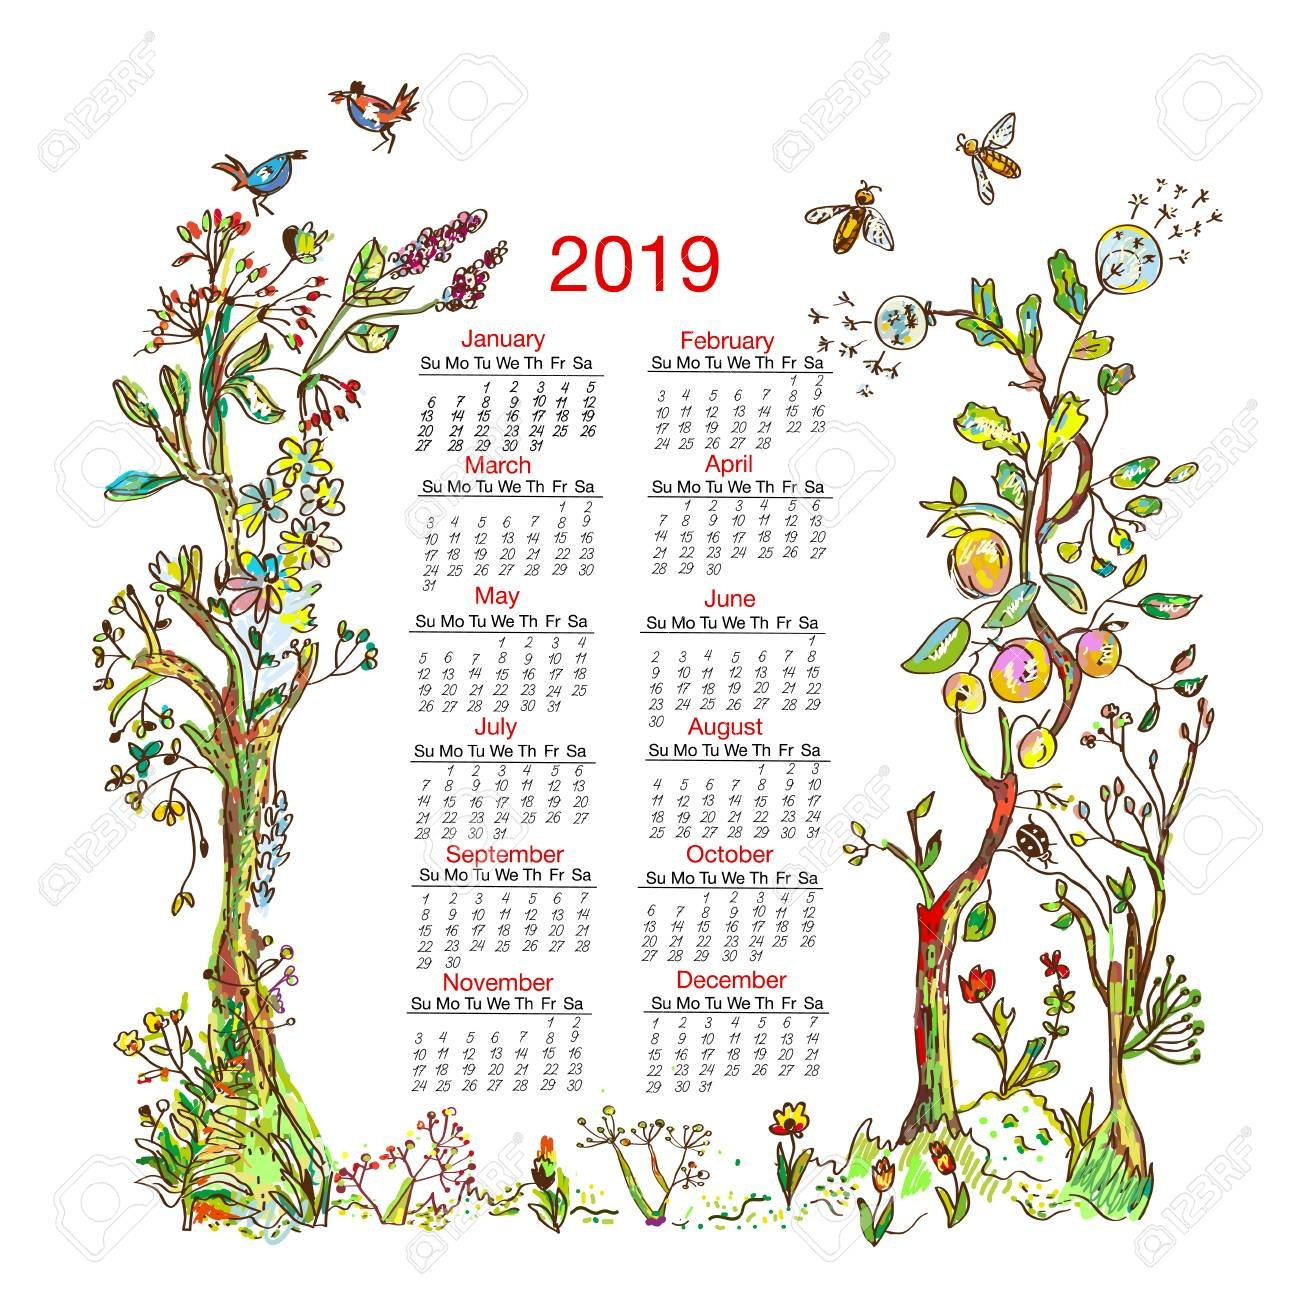 Calendar 2019 With Nature Frame Elements Royalty Free Cliparts Calendar 2019 Nature